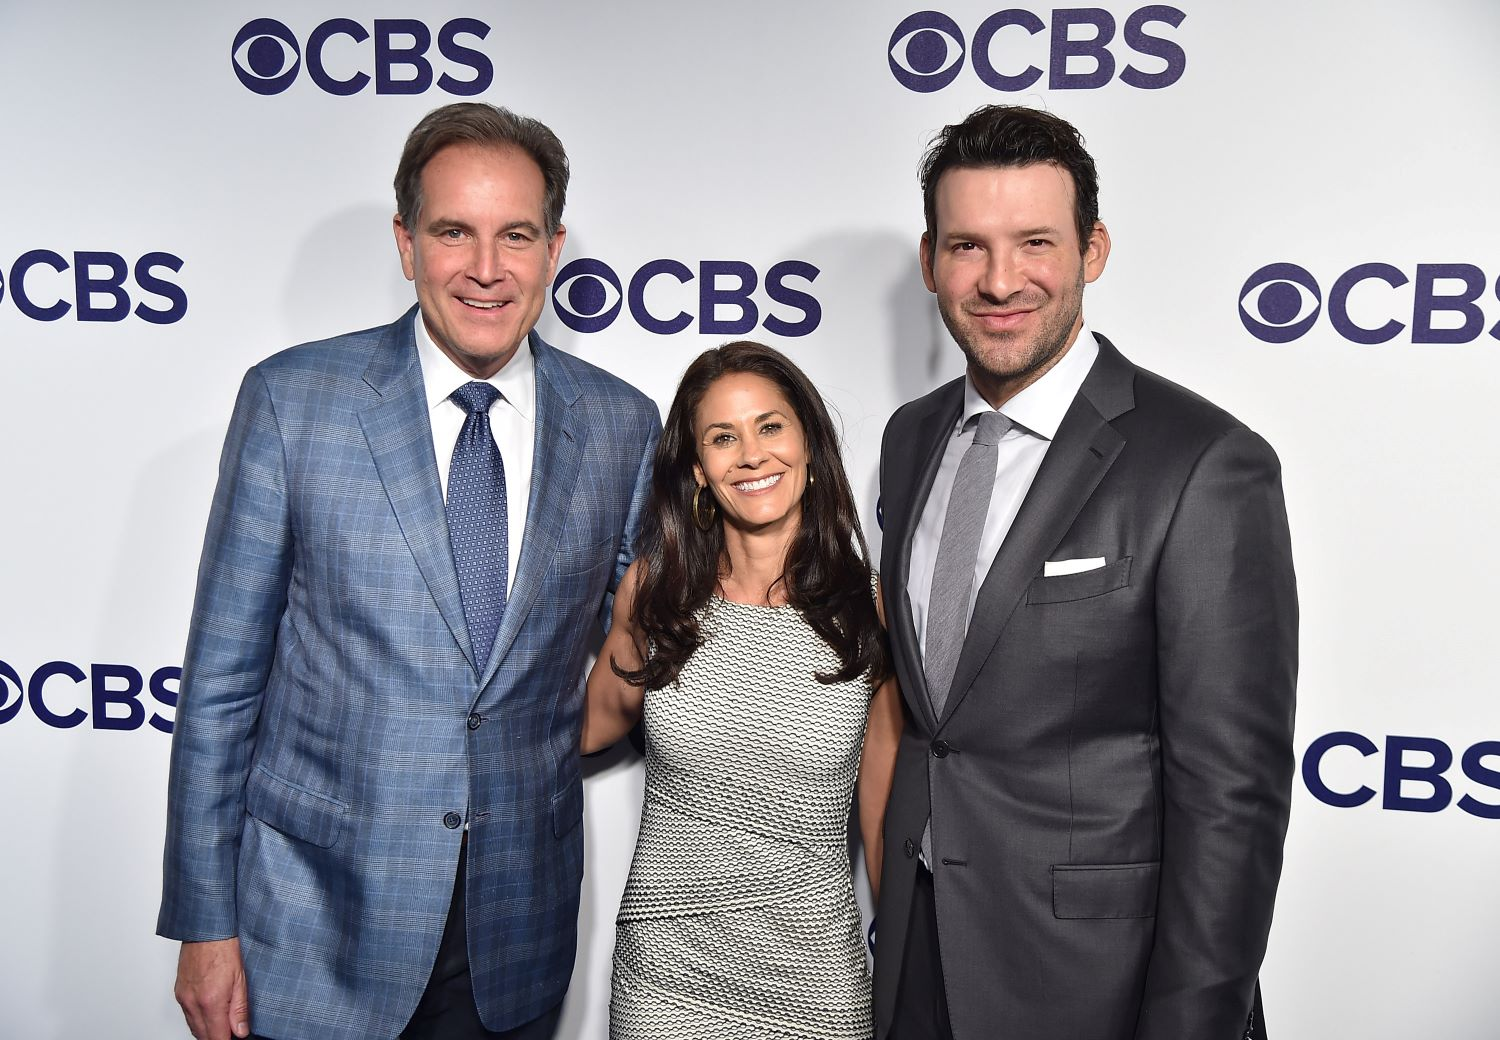 Jim Nantz reportedly wants CBS to pay him the same salary as Tony Romo.